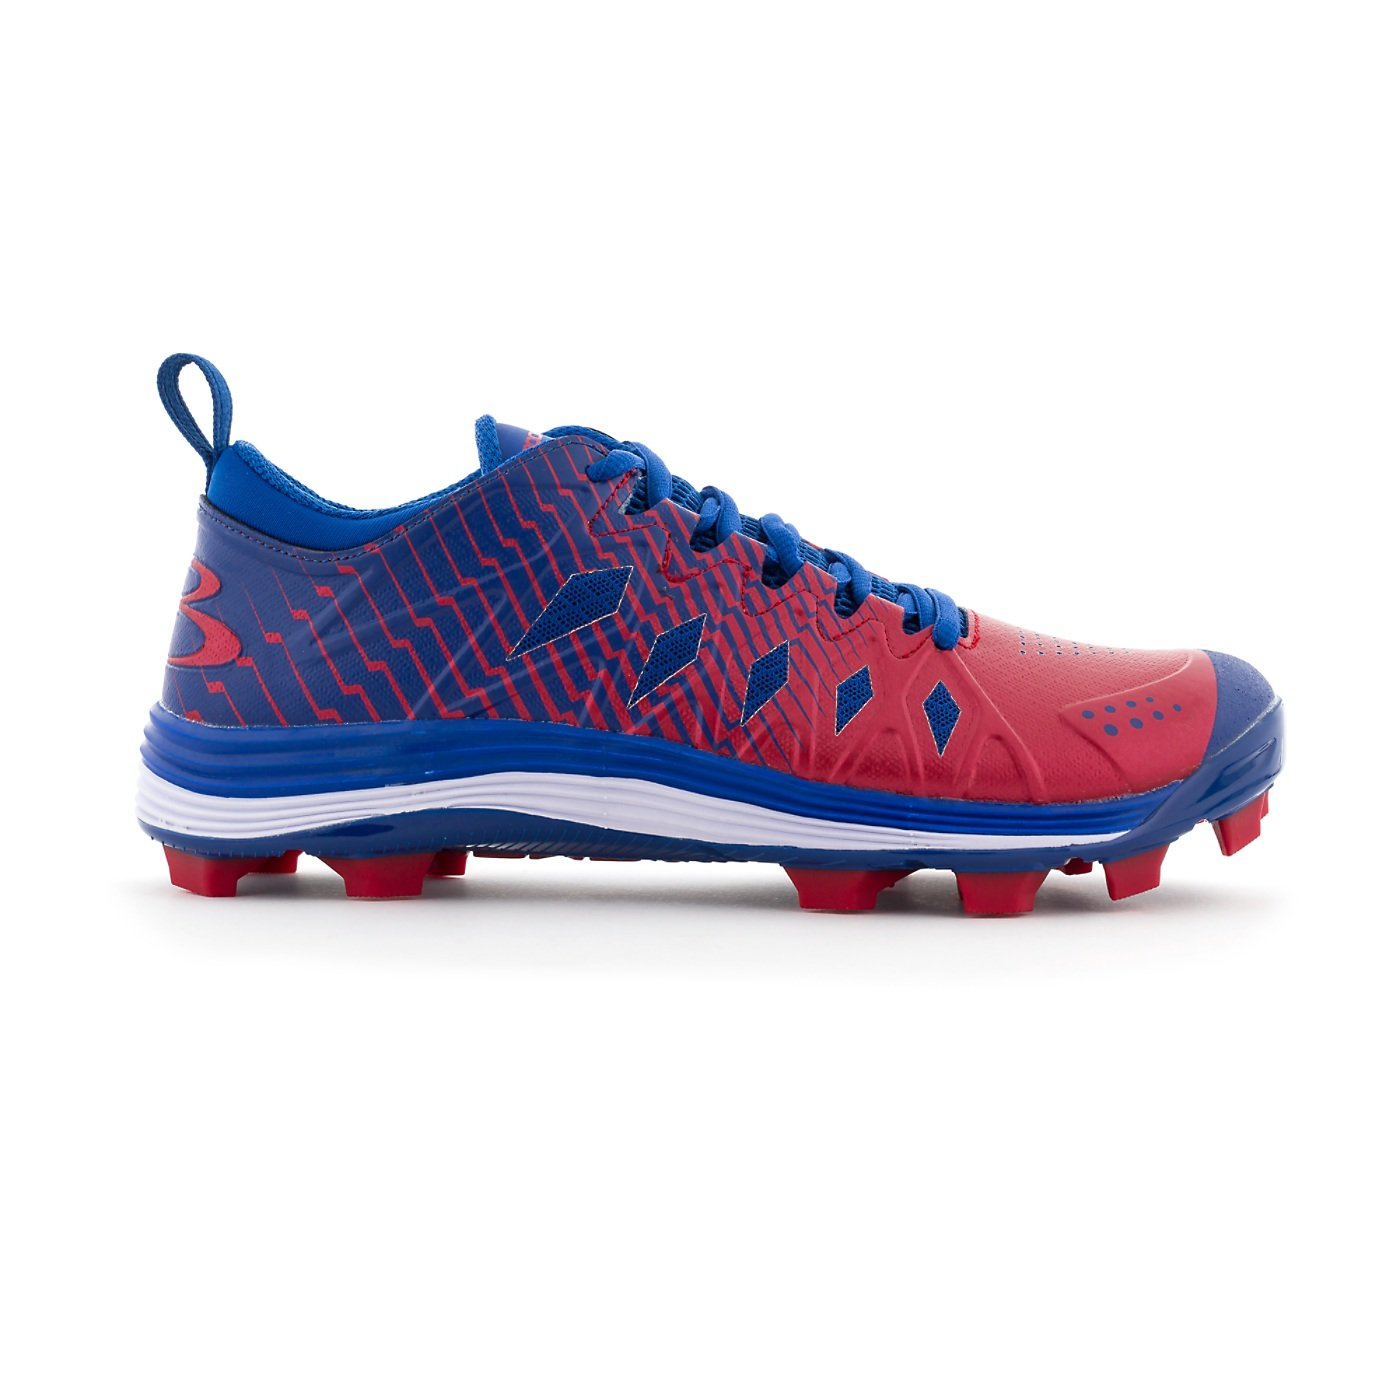 Boombah Men's Squadron Molded Cleats - 8 Color Options - Multiple Sizes B079V1FTMQ 5|Royal/Red